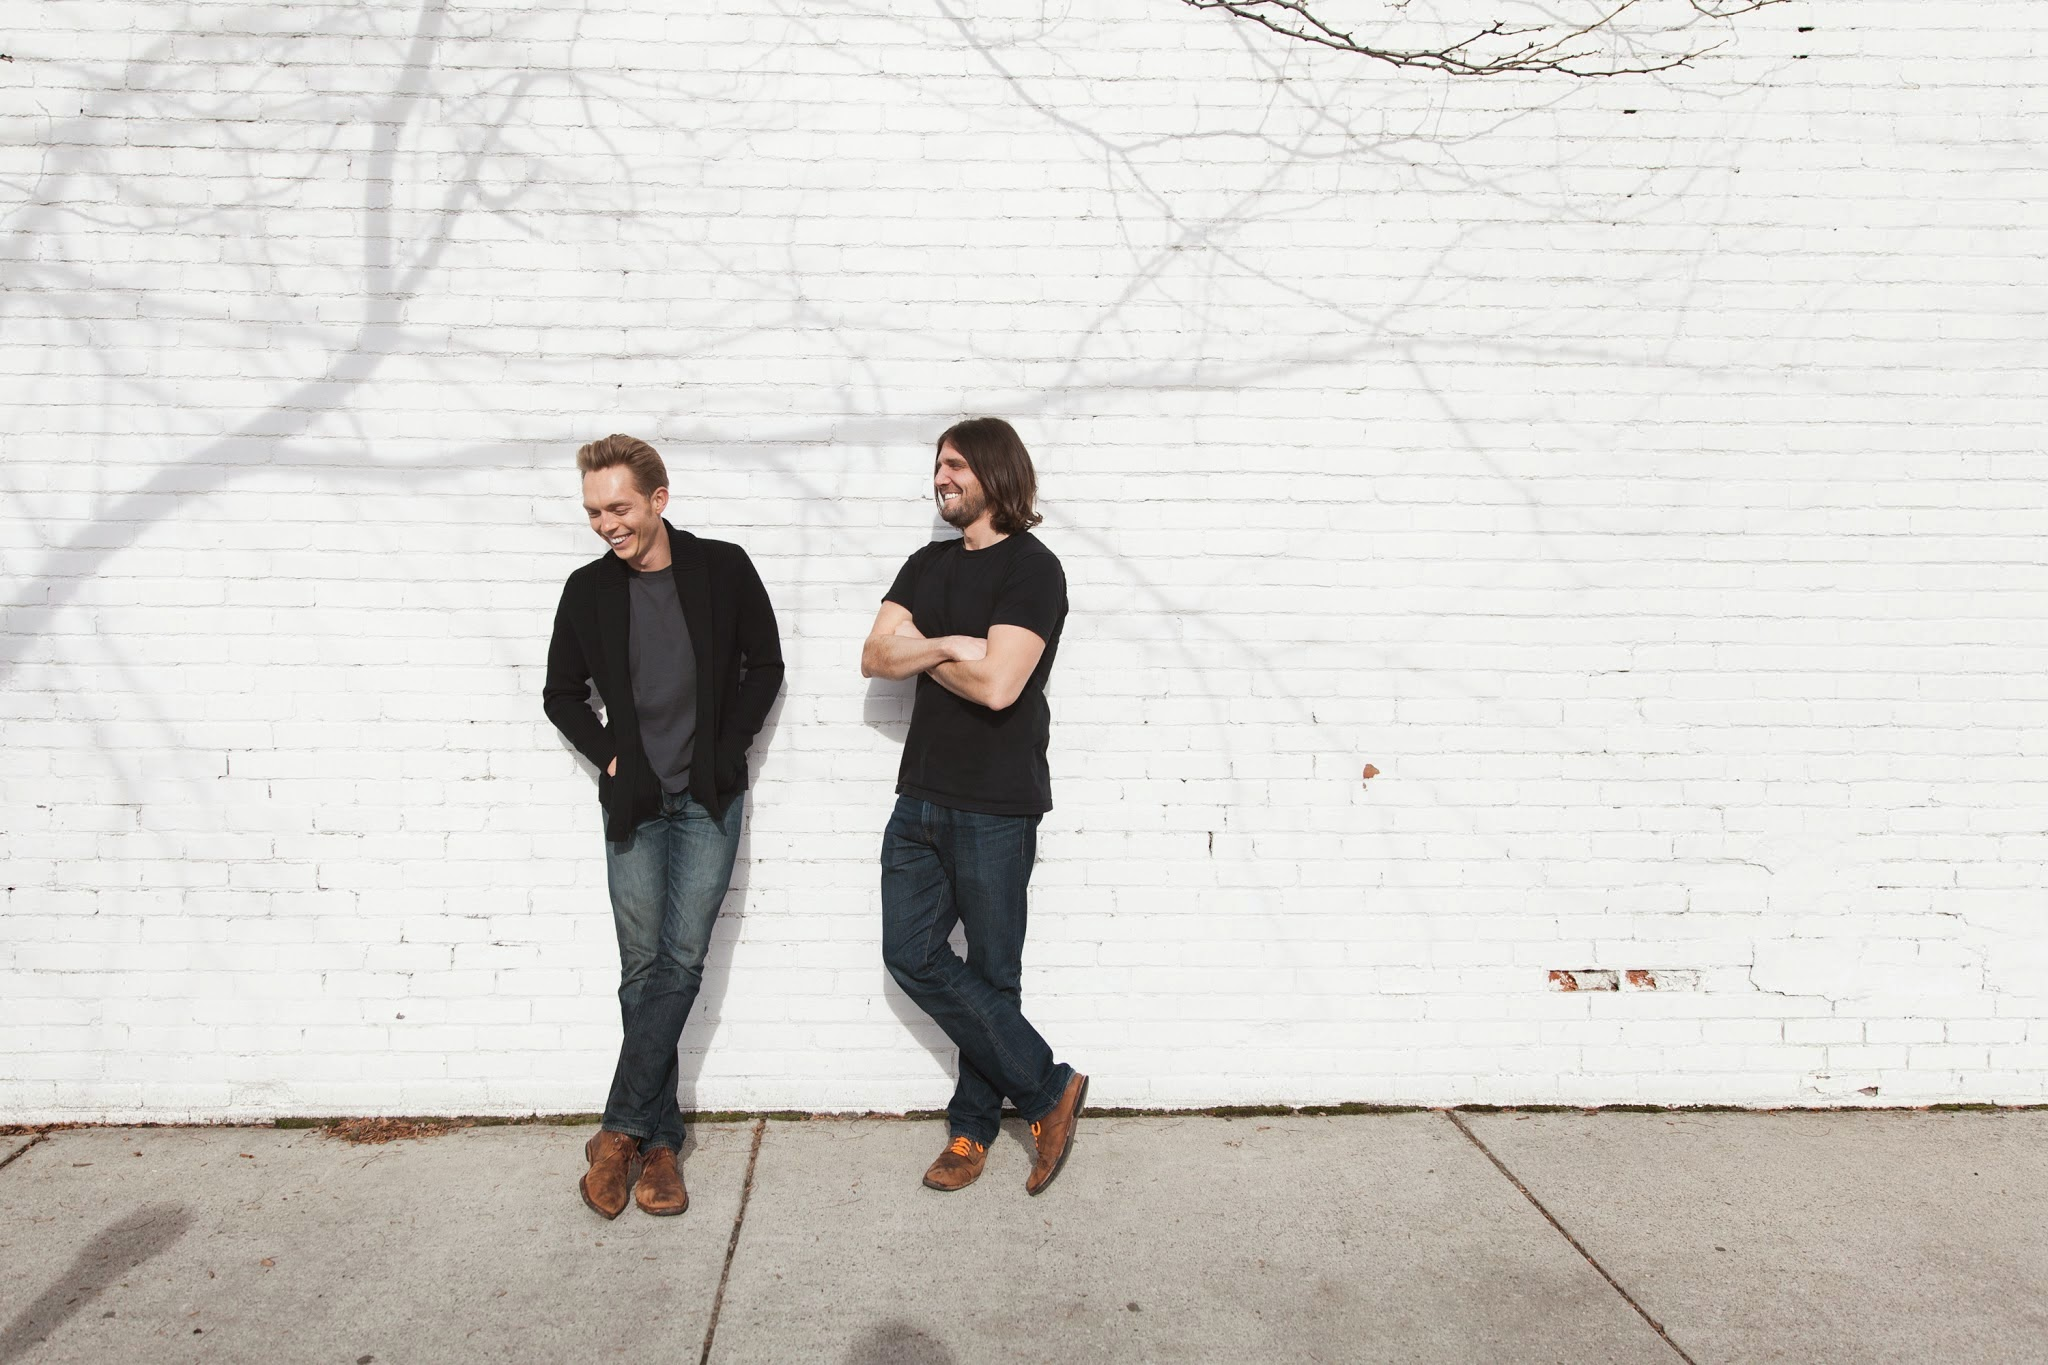 The Minimalists- Less Is Now